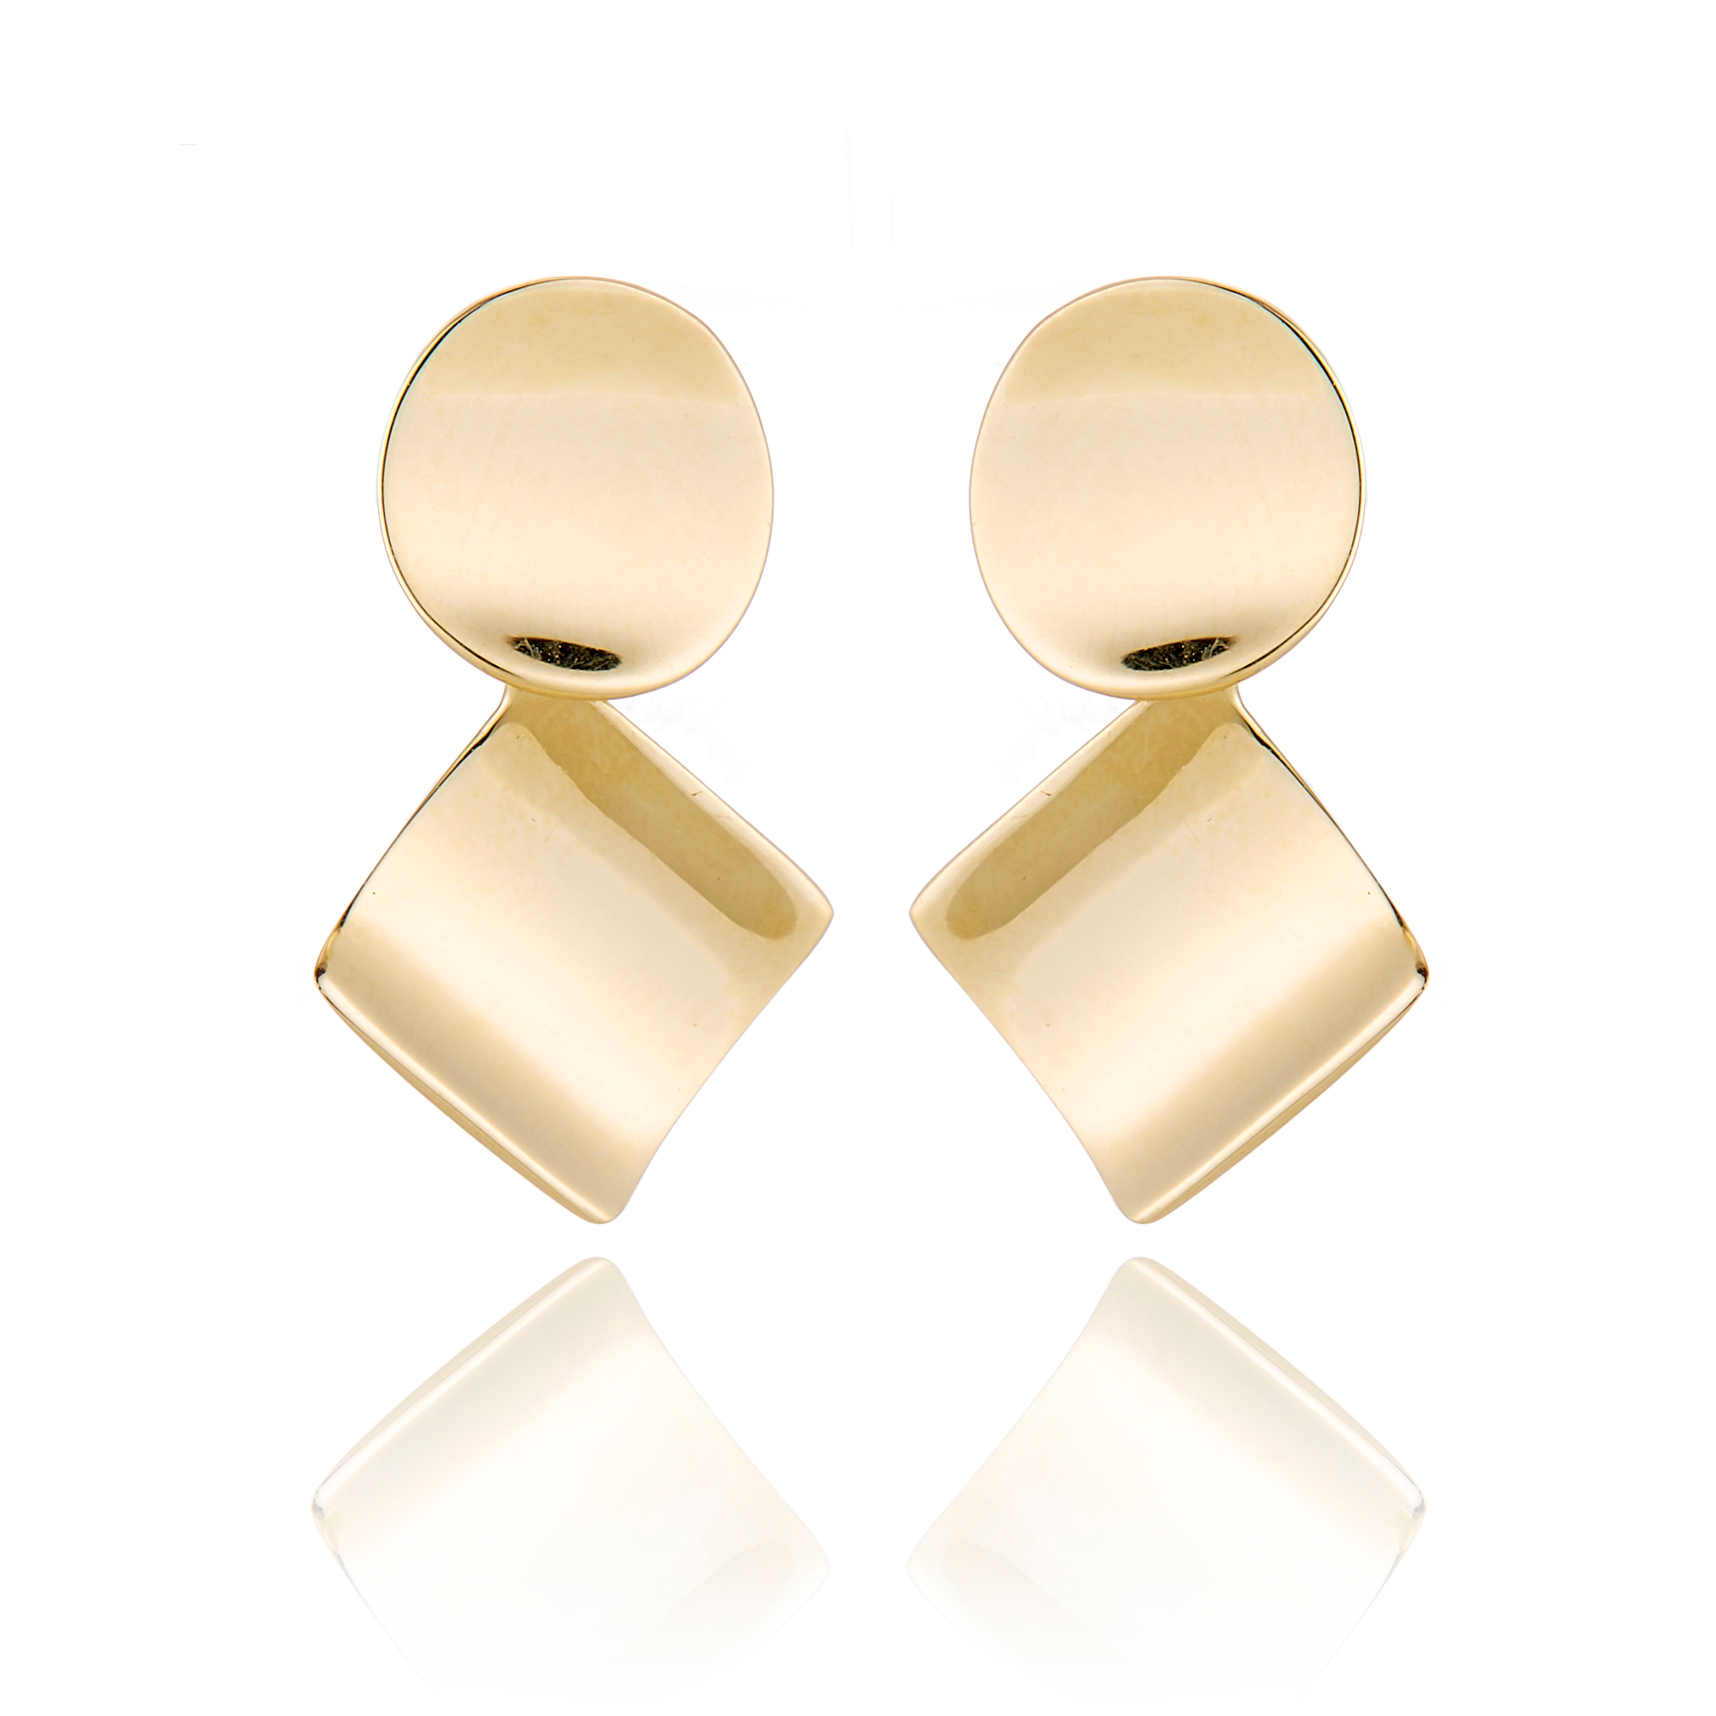 Gump's Concave Geometric Earrings